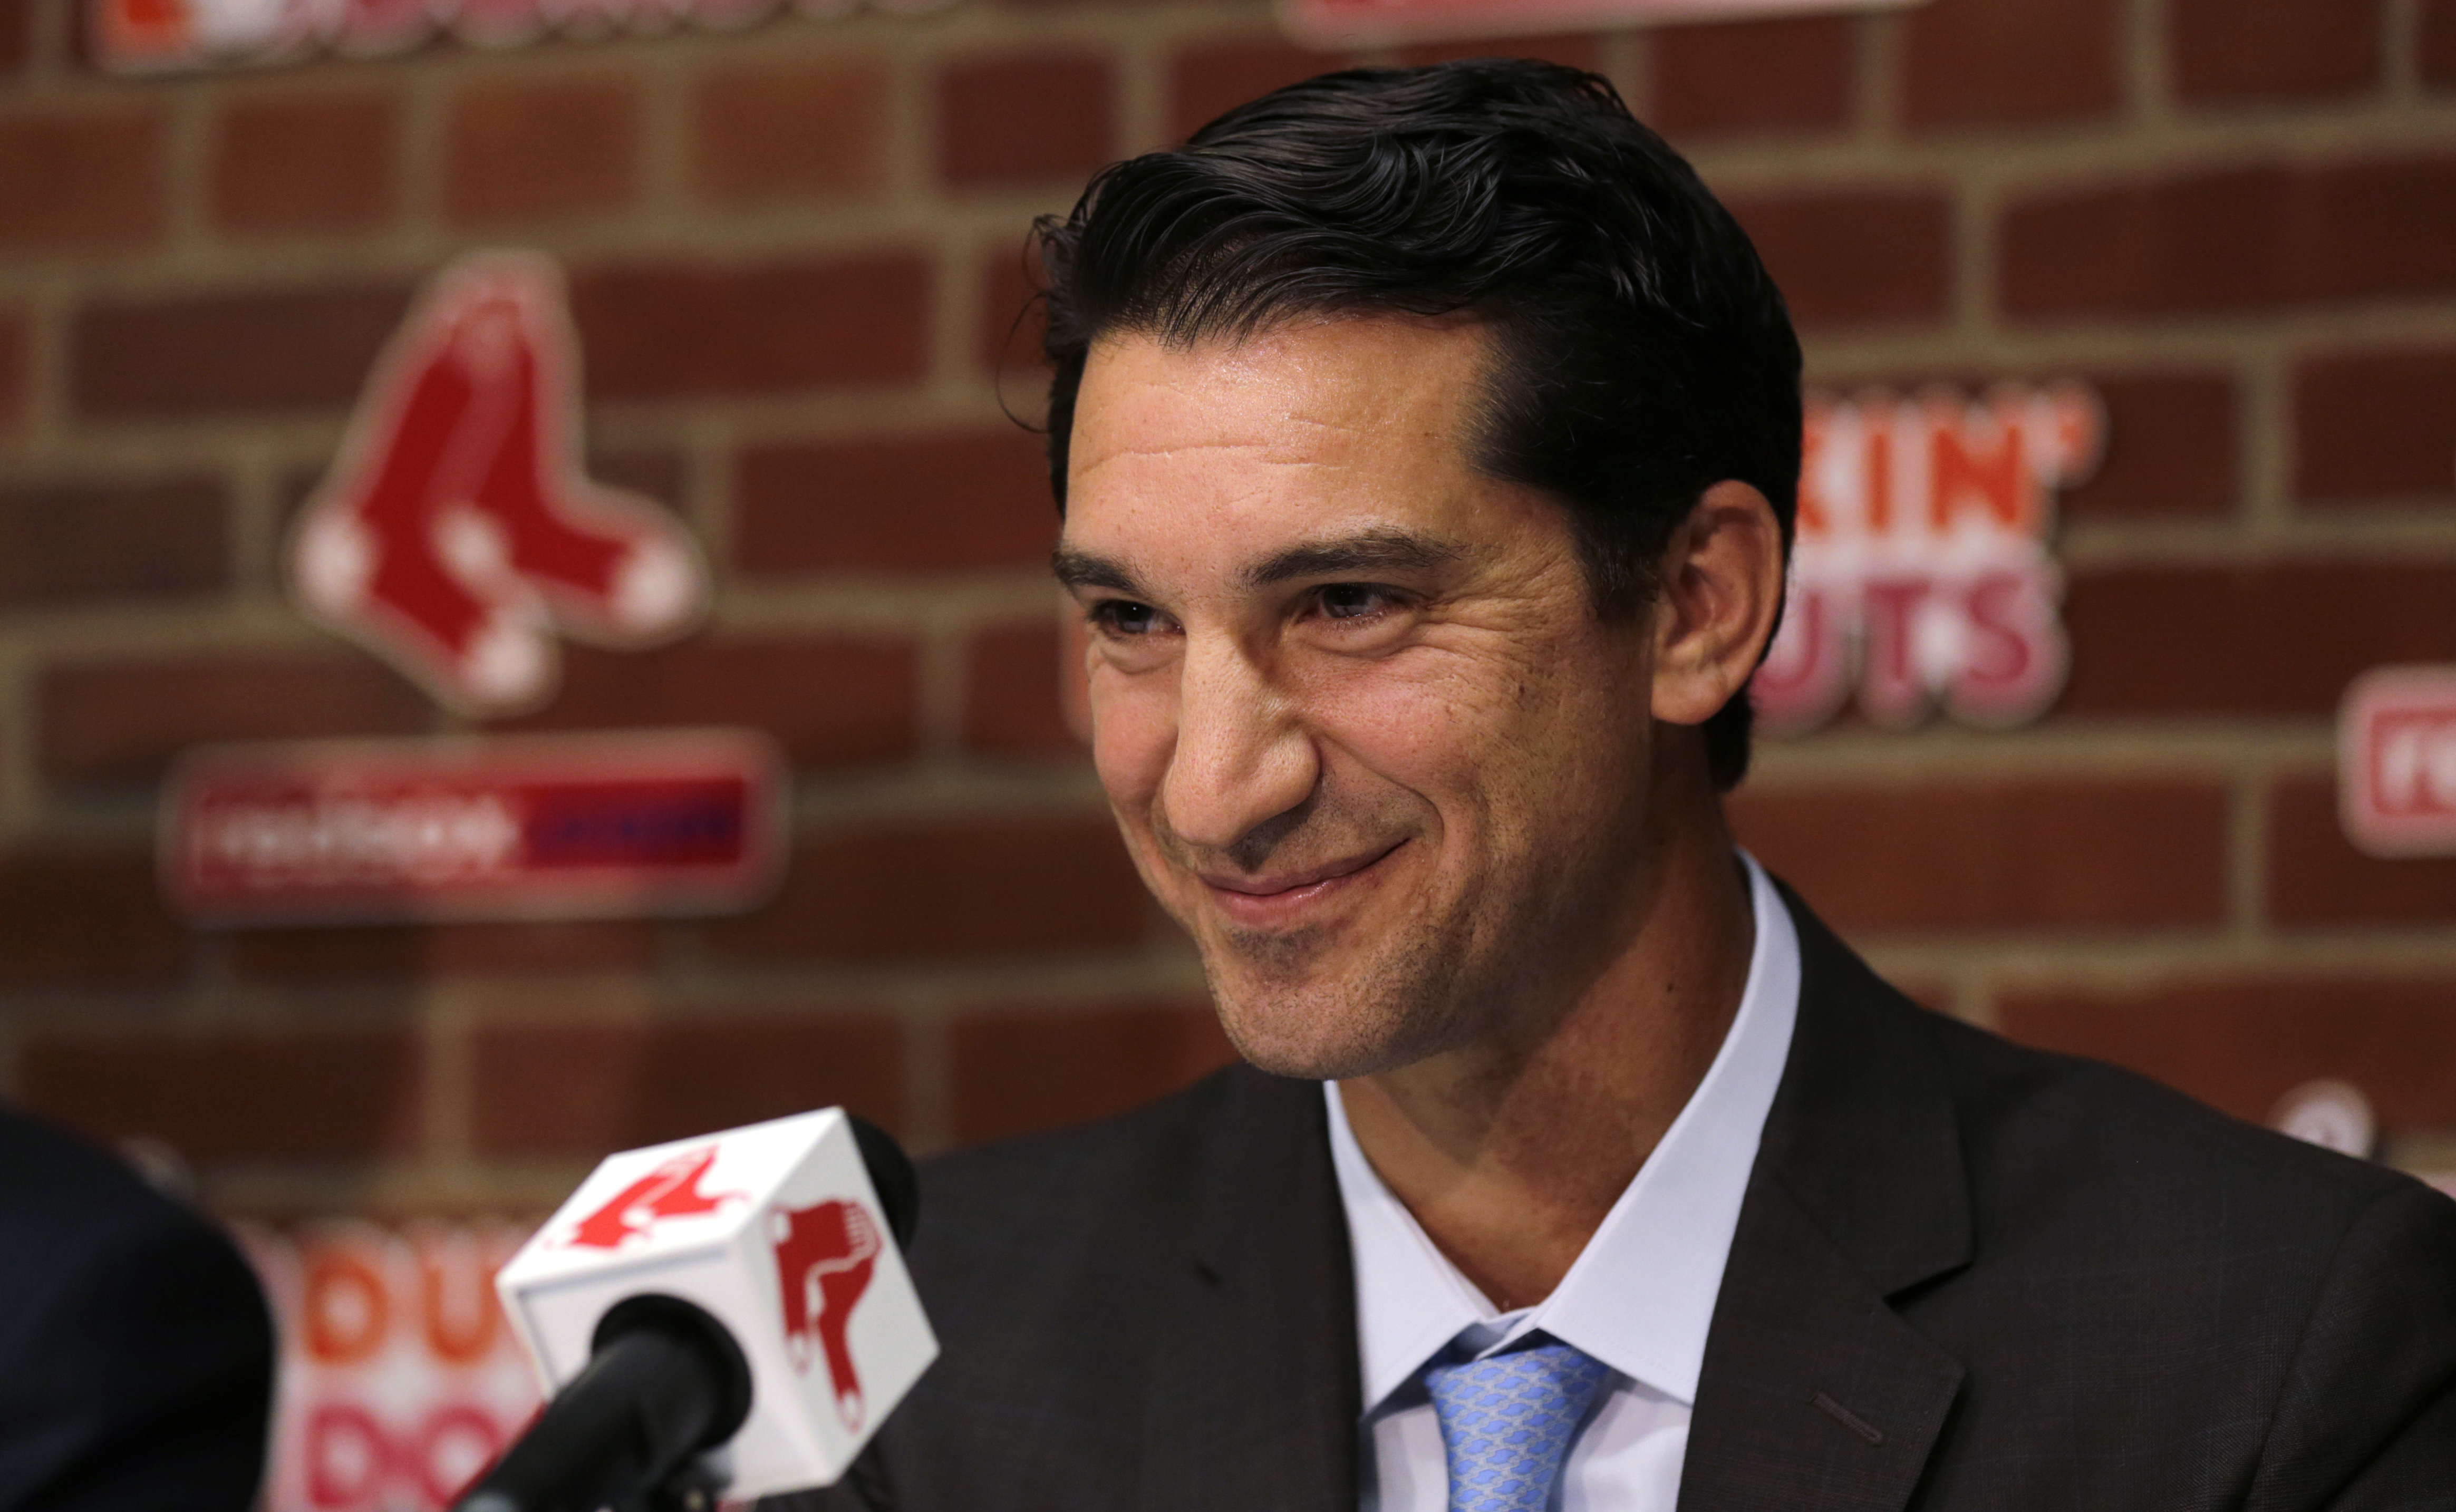 FILE - In this Sept. 24, 2015, file photo, Boston Red Sox newly appointed general manager Mike Hazen smiles at Fenway Park in Boston. The Arizona Diamondbacks have named Hazen as executive vice president and general manager. The team announced the hiring